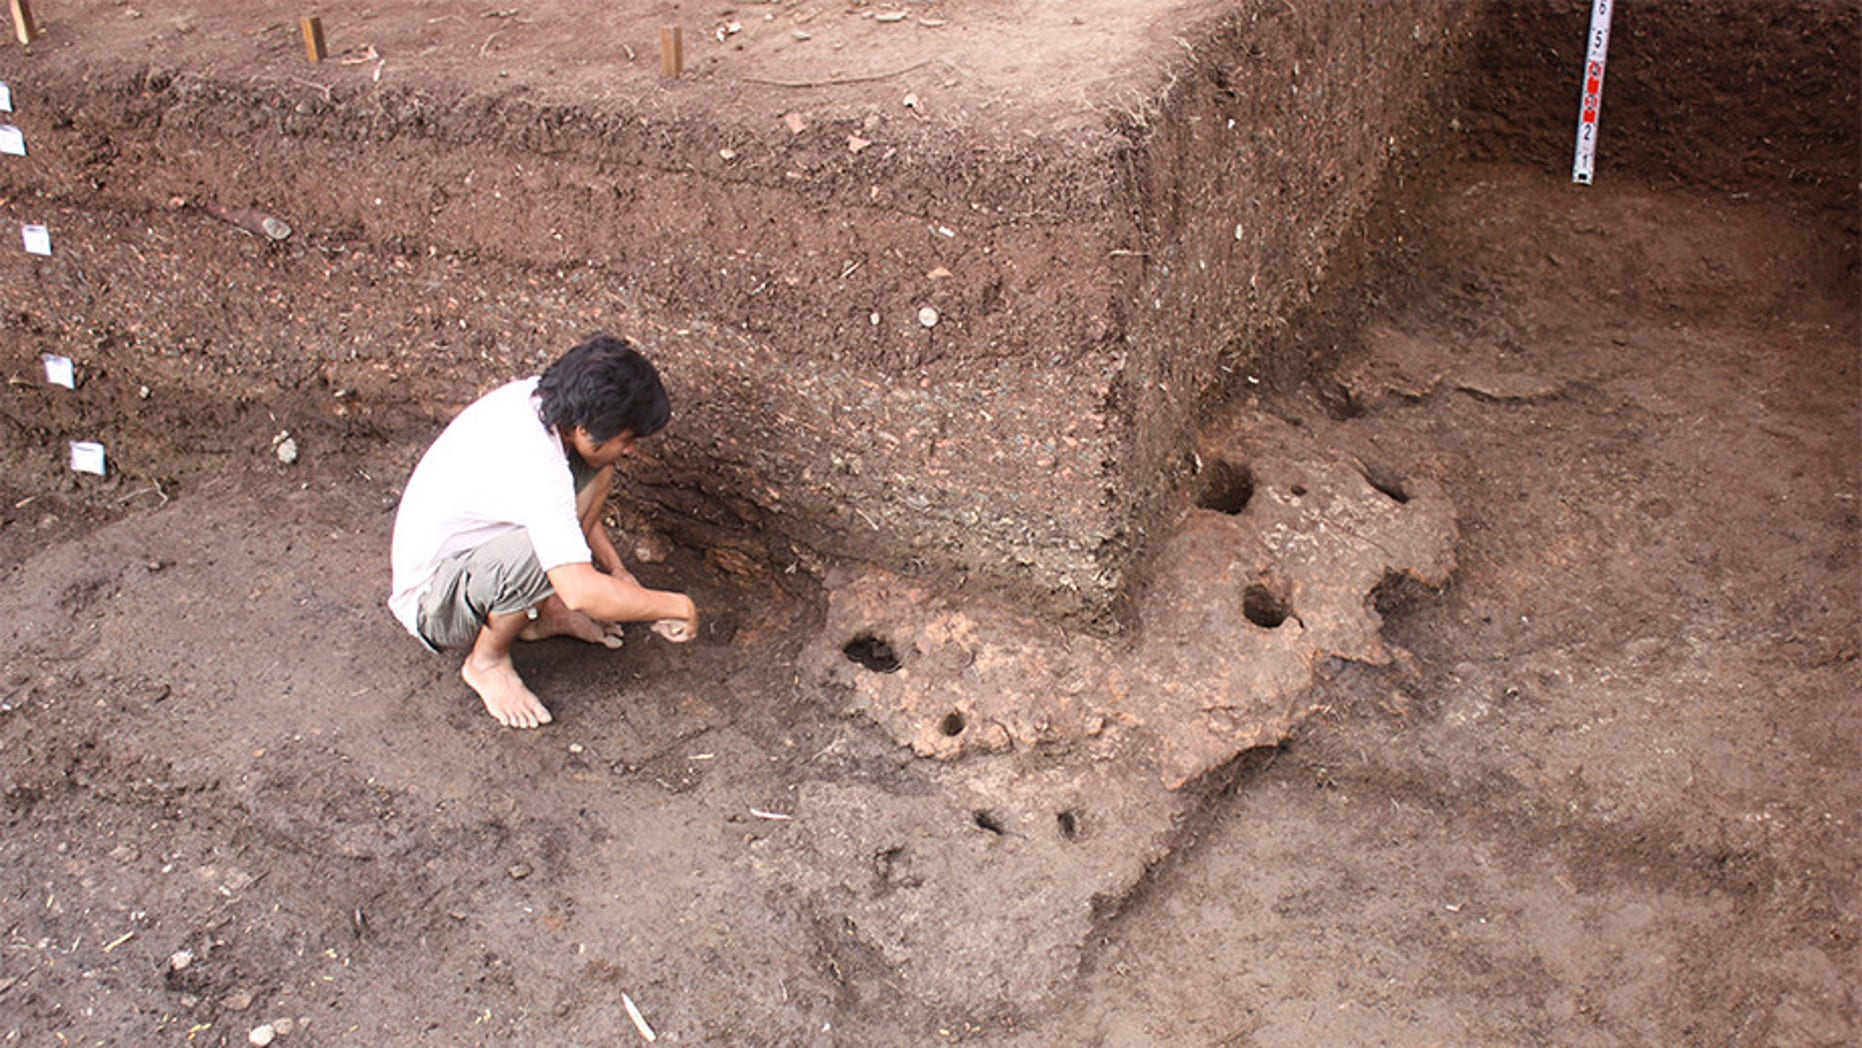 The excavation site at Rach Nui in Southern Vietnam. (ANU)